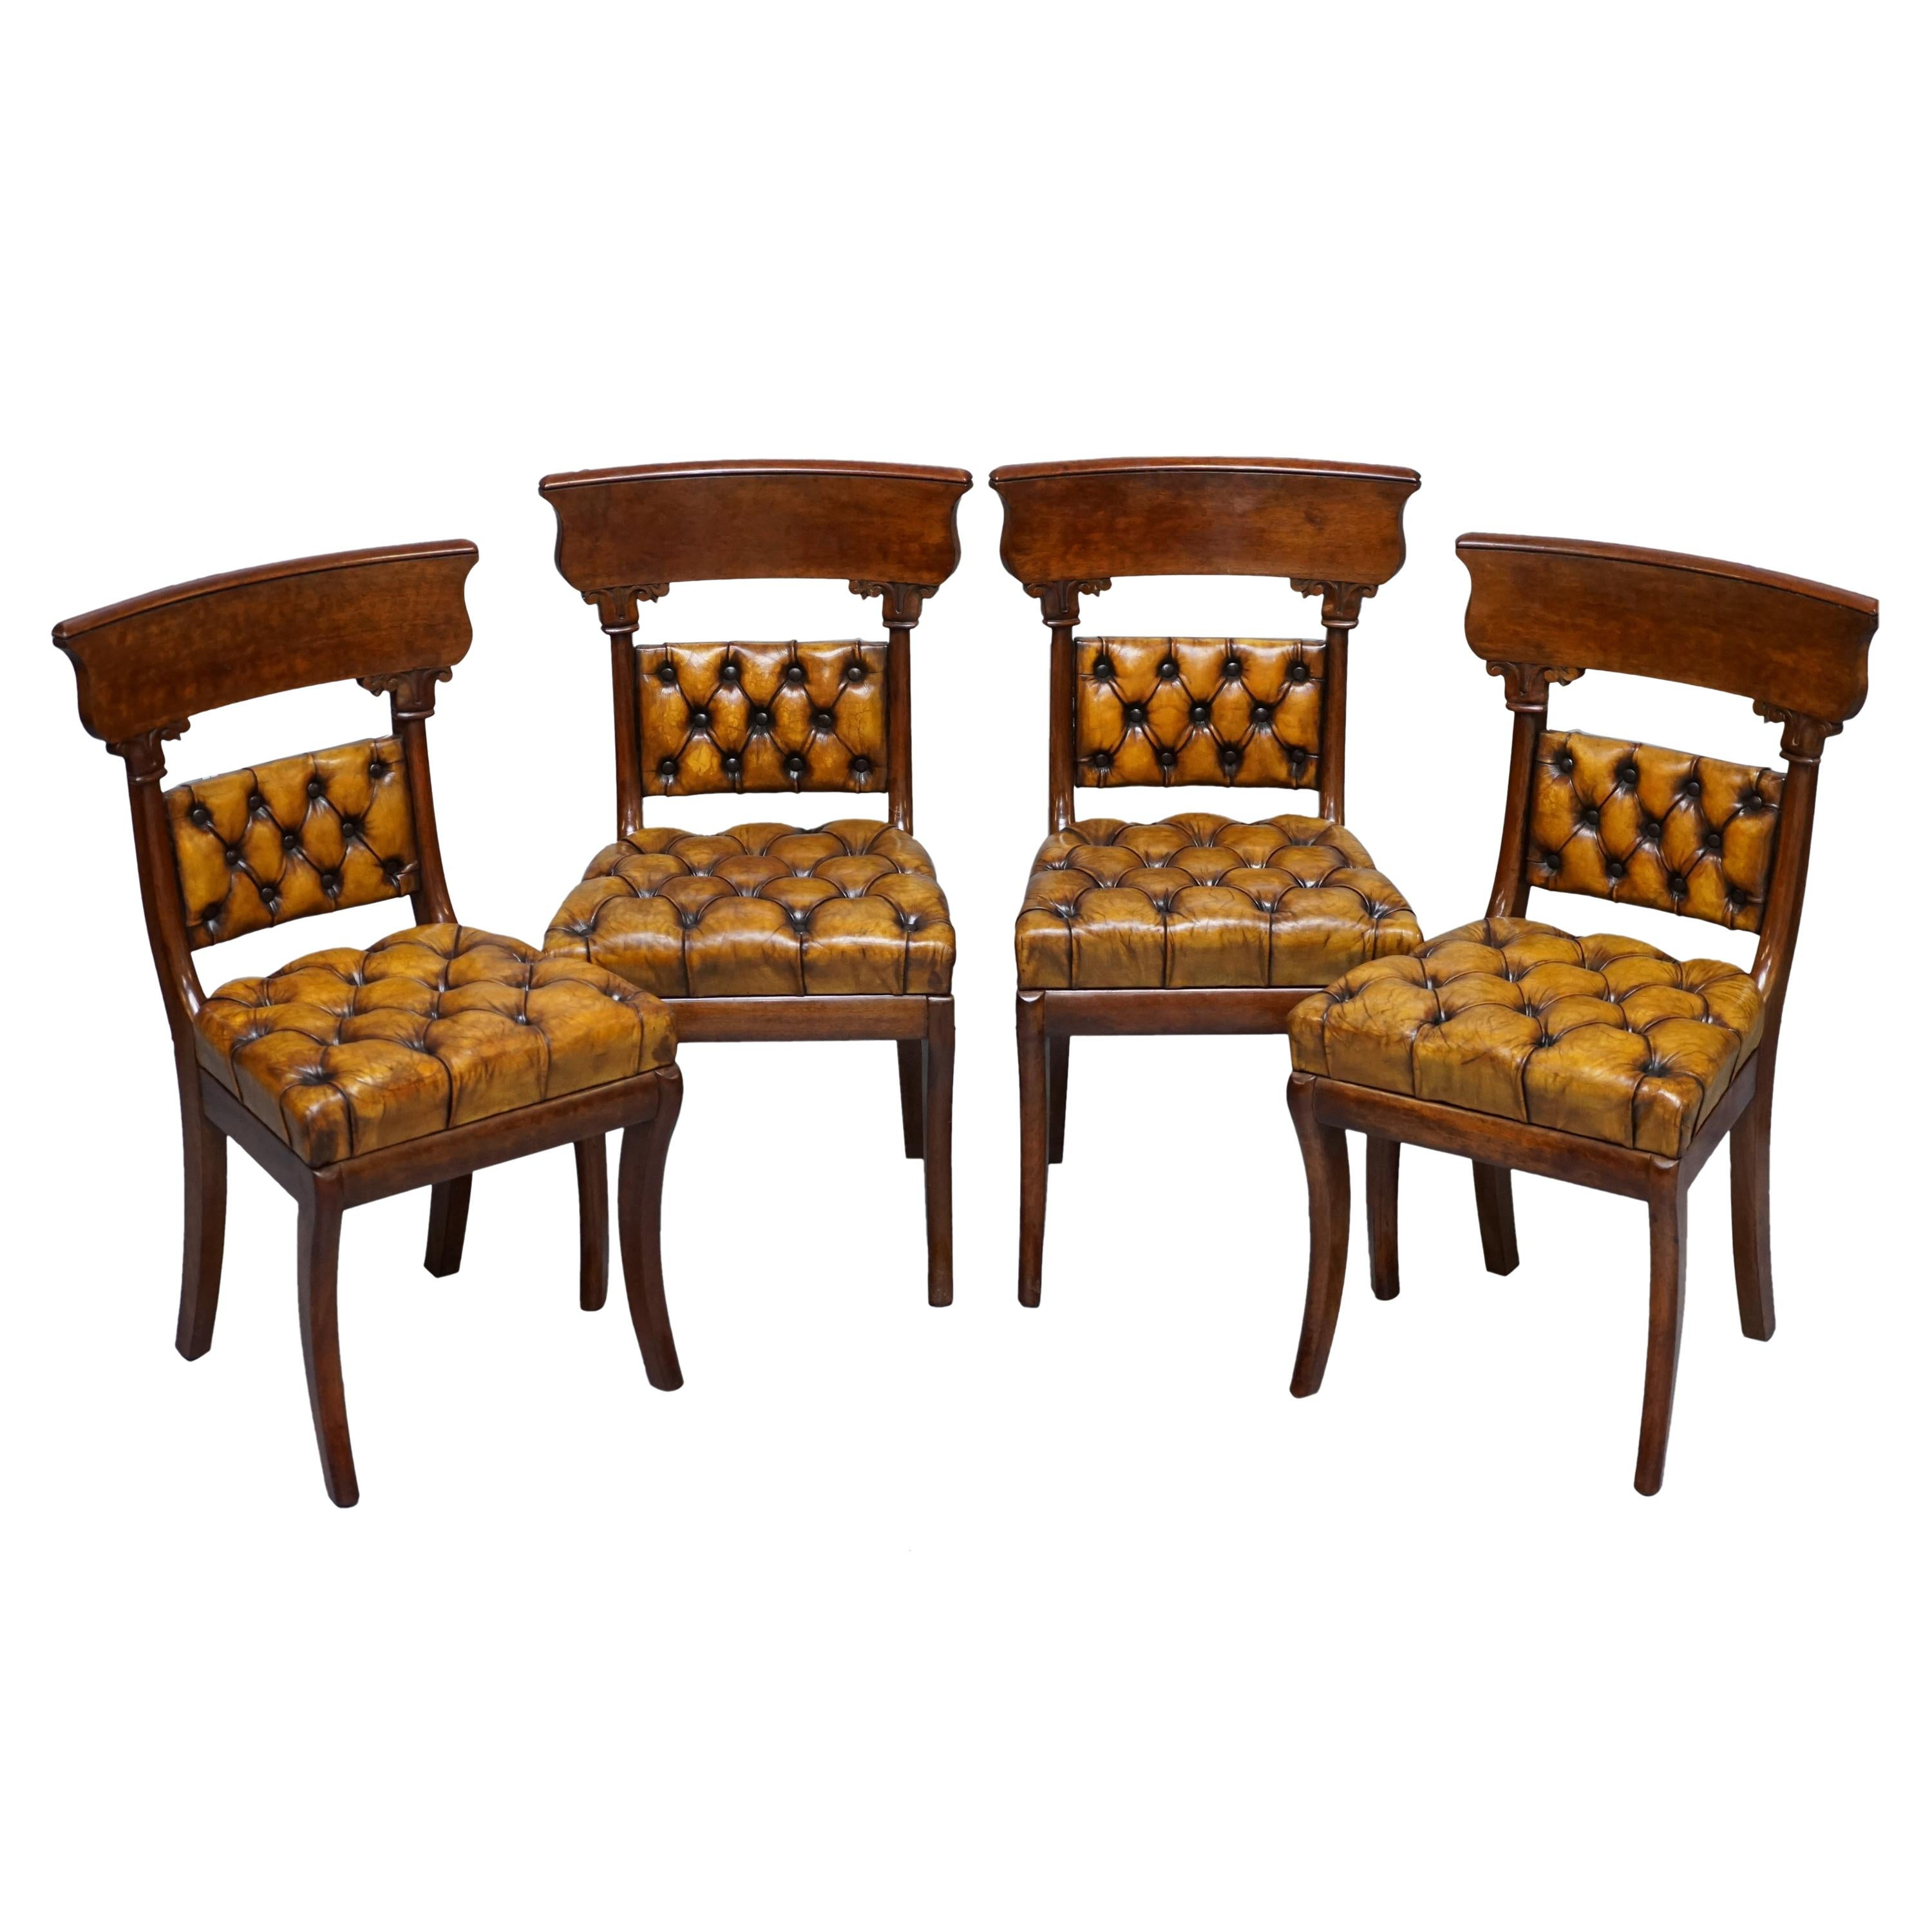 Four Original Regency Walnut Restored Chesterfield Brown Leather Dining Chairs